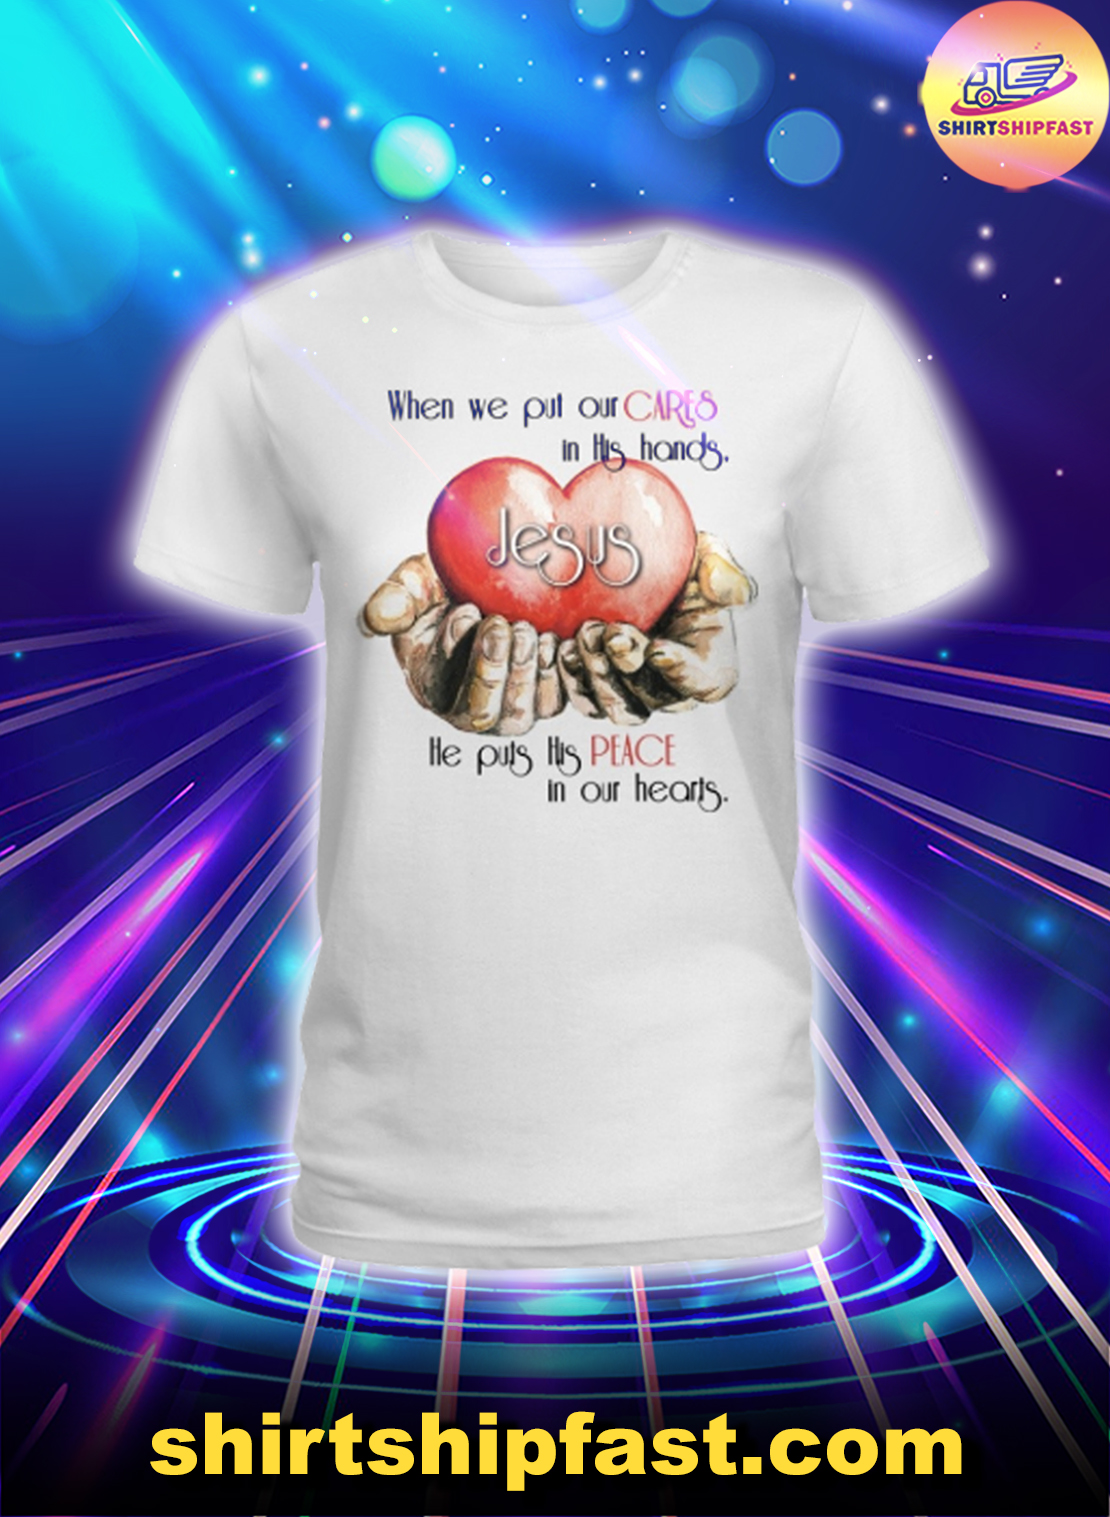 Jesus When we put our cares in this hands he puts his peace in our hearts lady shirt